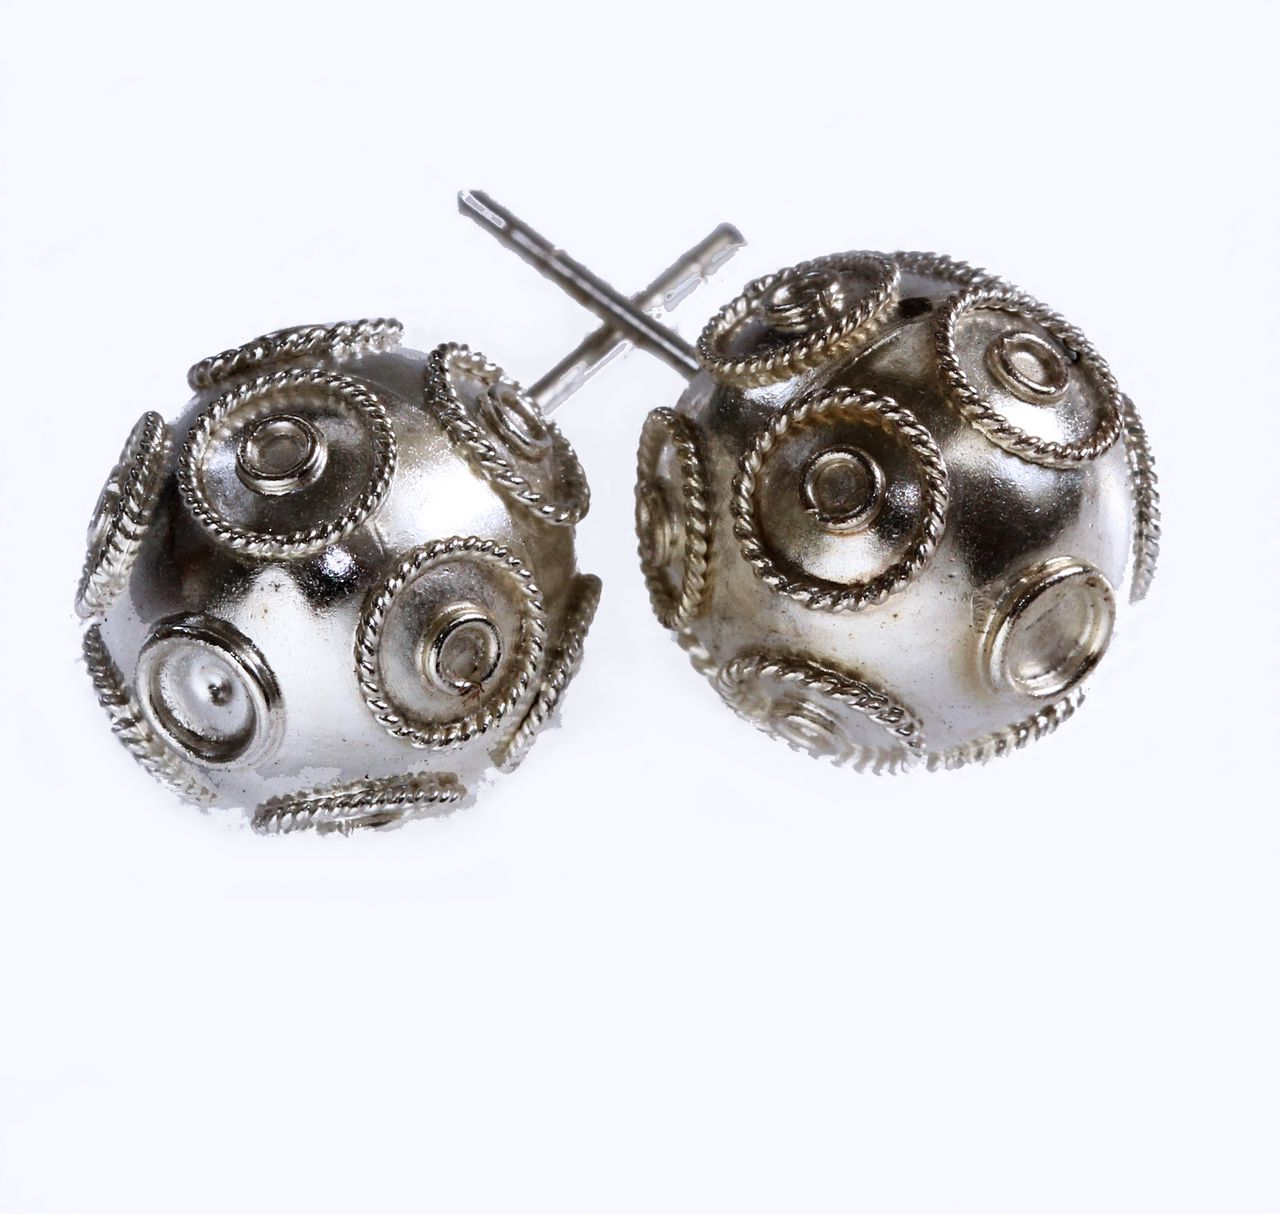 Modavista - Earrings studs silver balls with filigree wire patterns ...